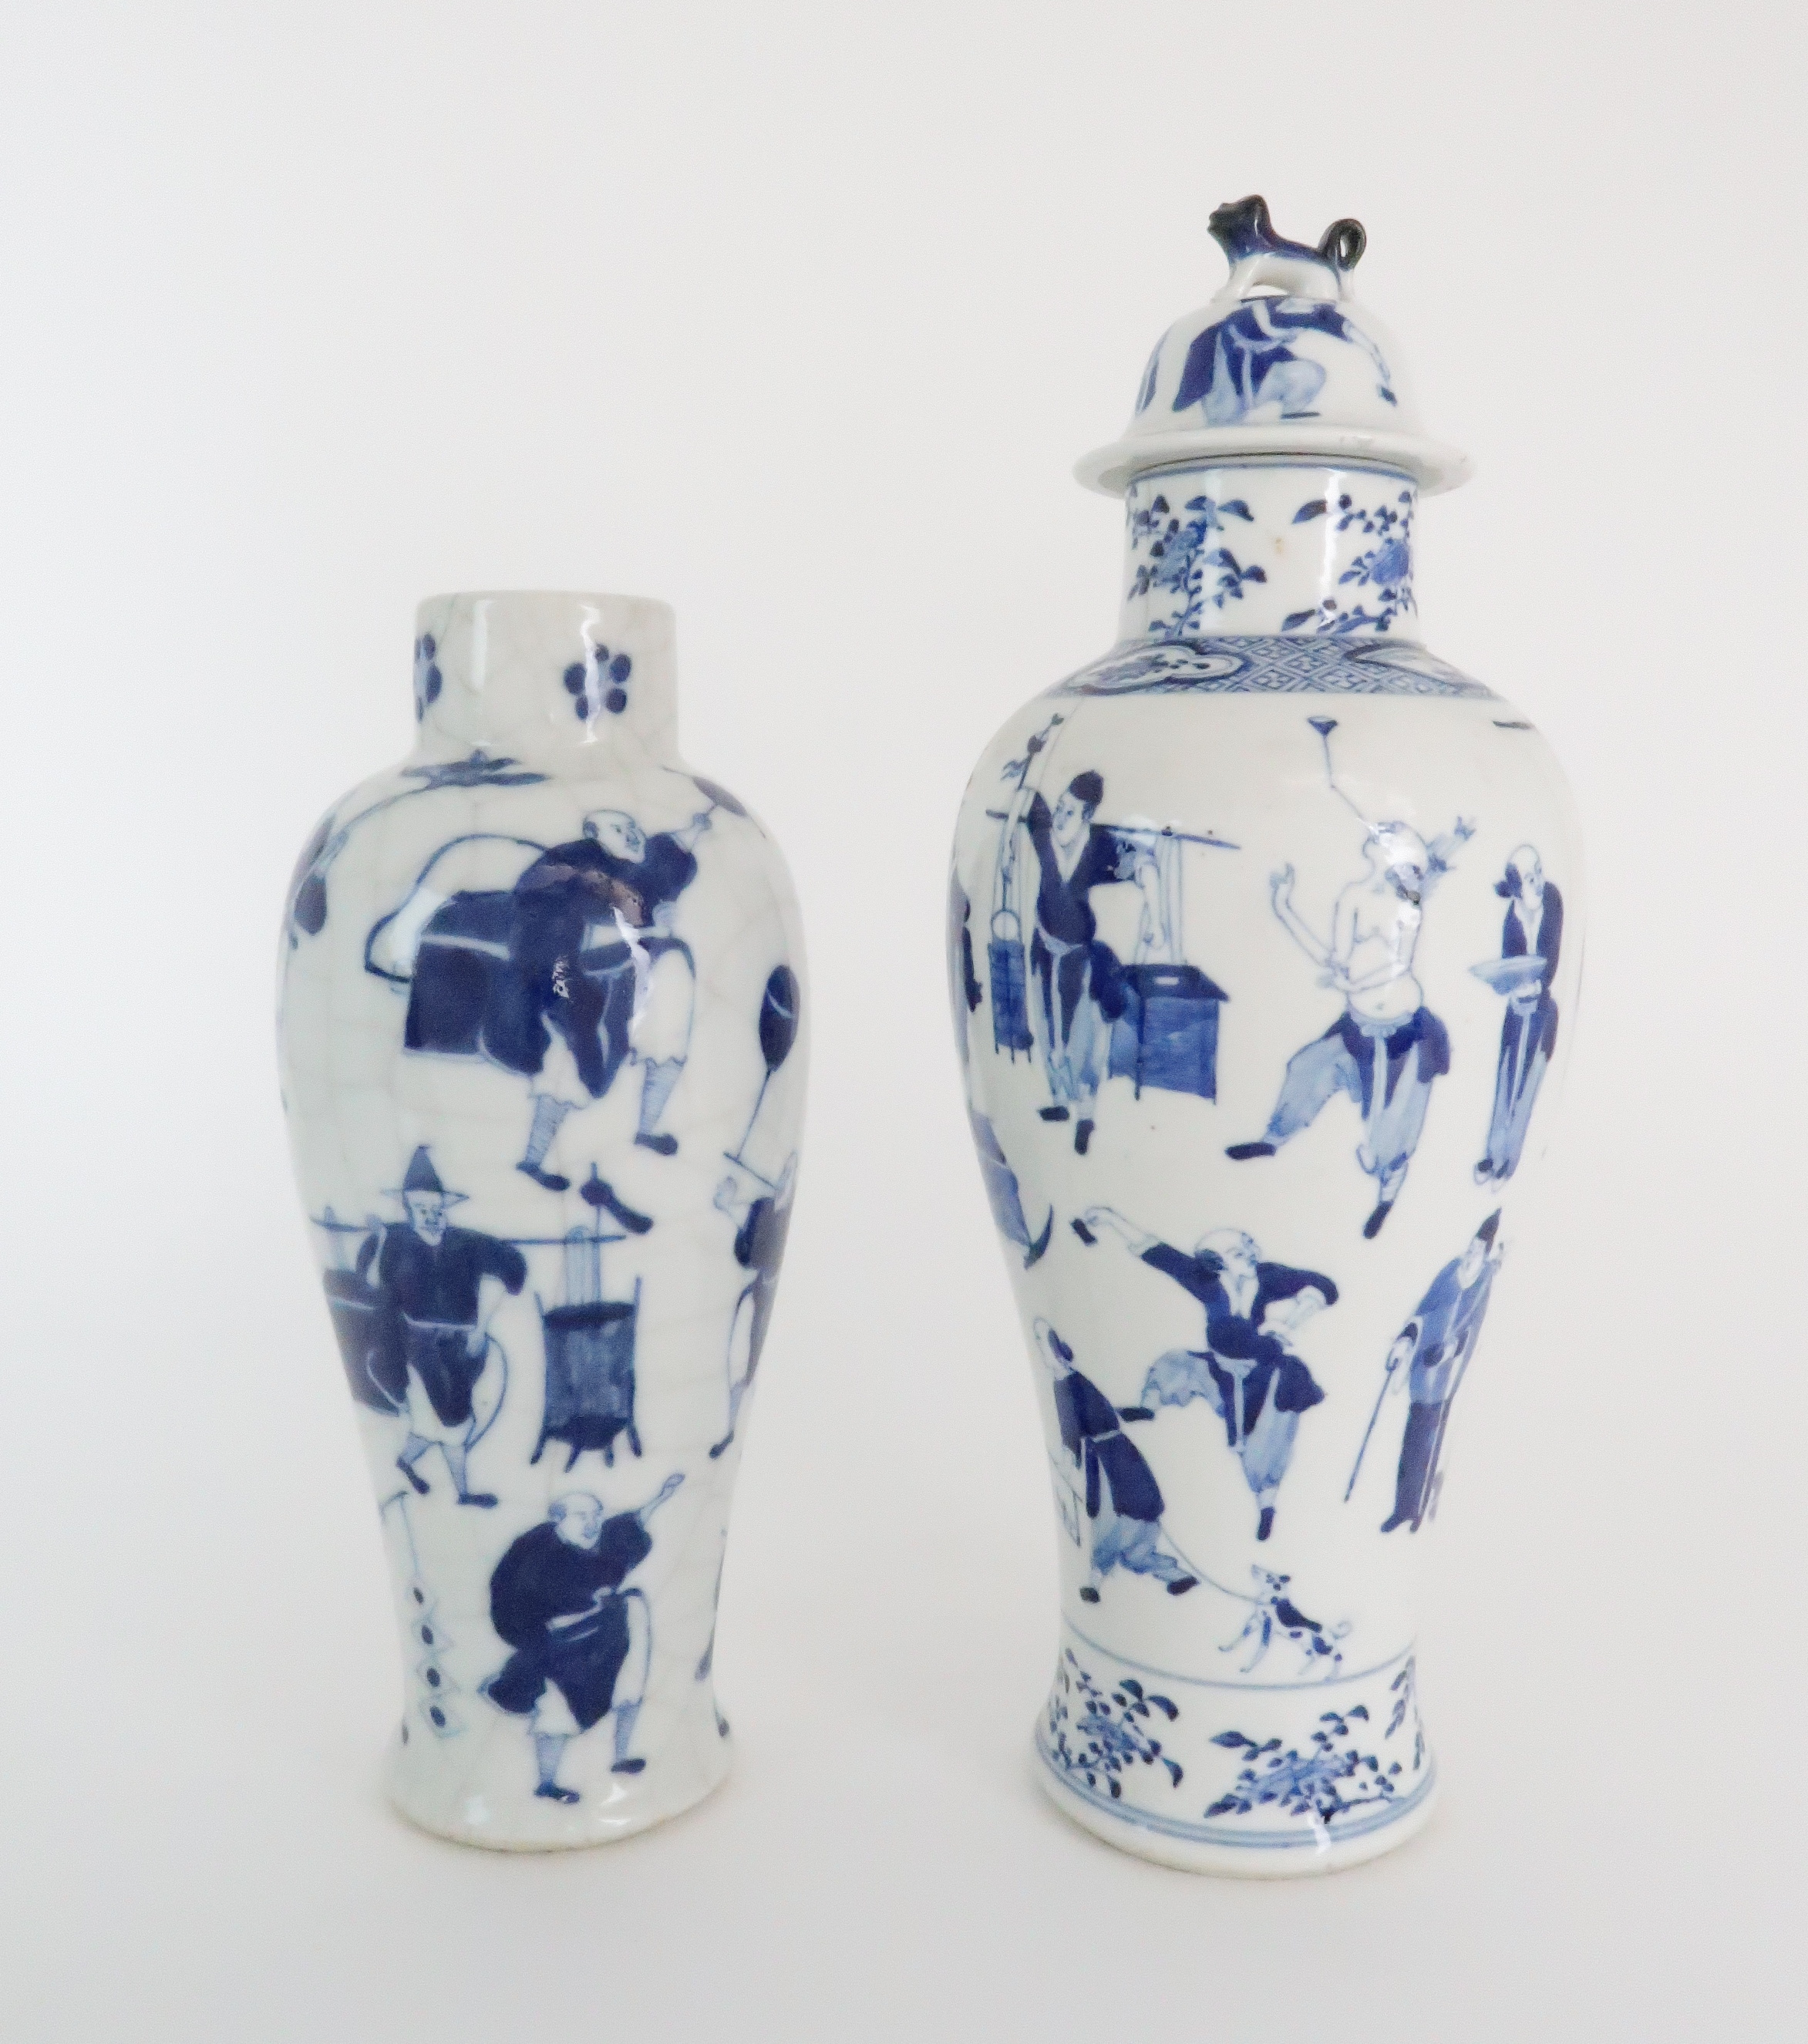 A CHINESE BLUE AND WHITE BALUSTER VASE AND COVER painted with numerous figures within foliate